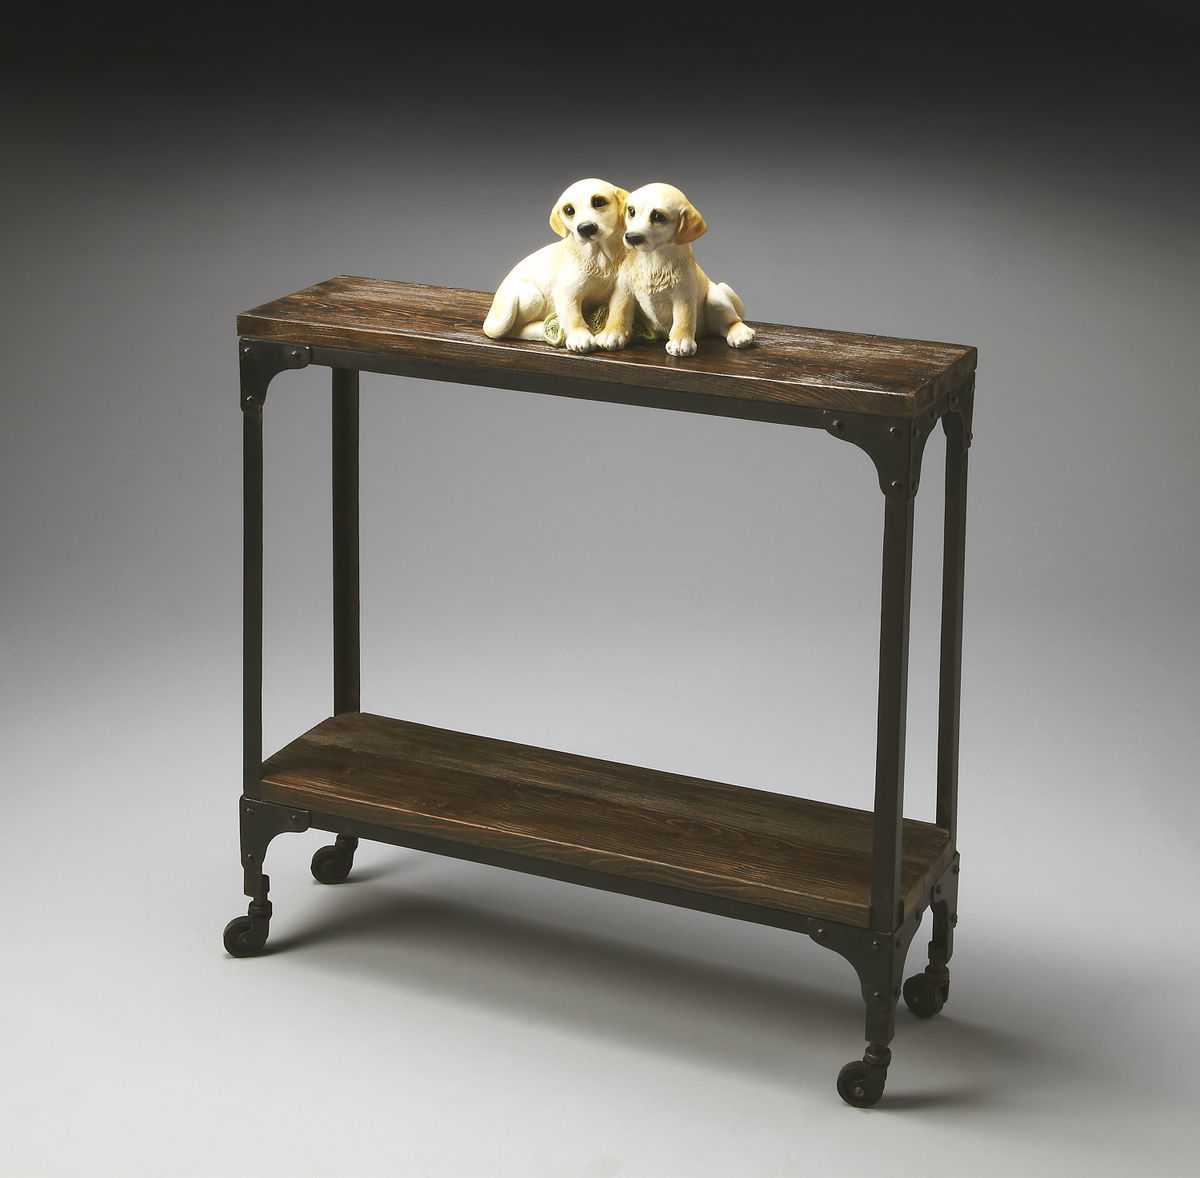 Planked Industrial Console Table